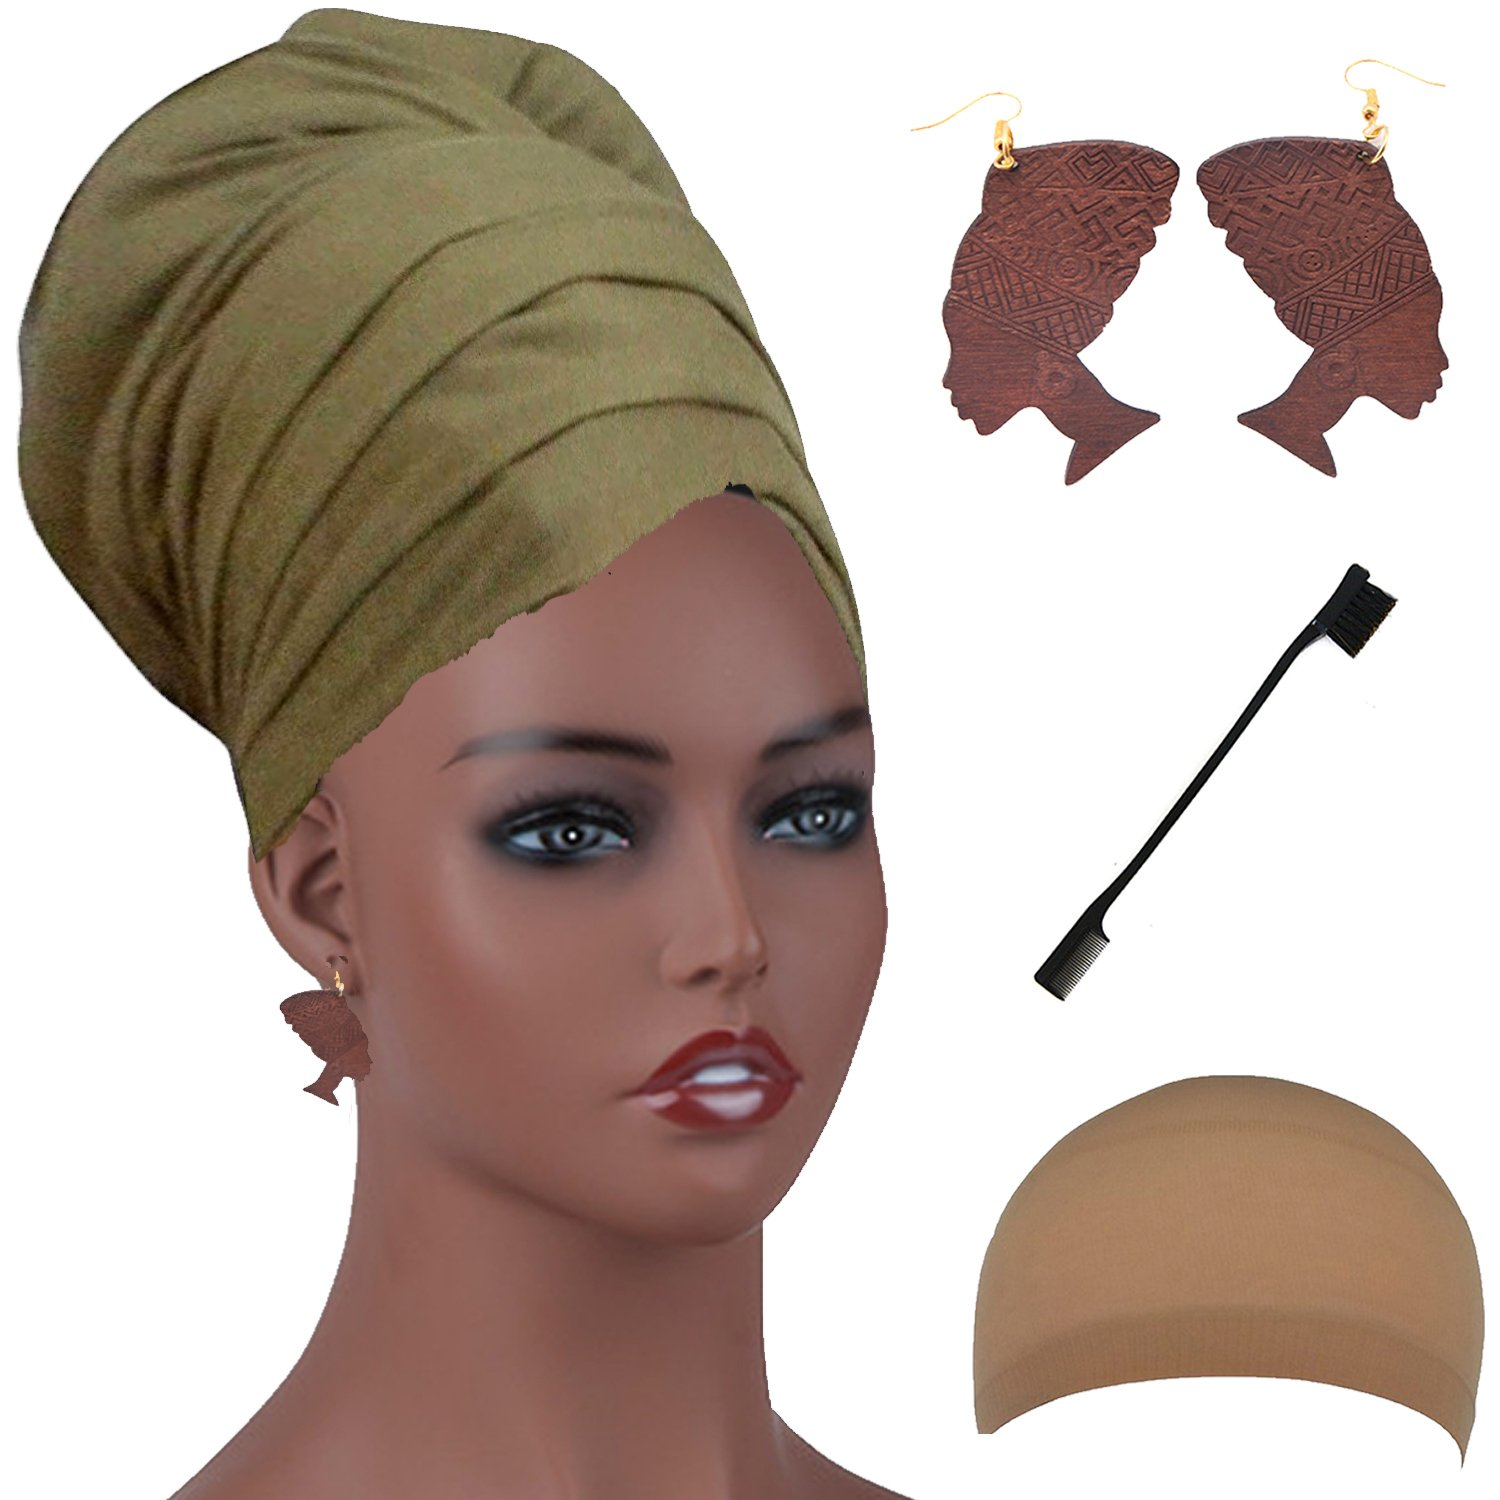 Long Stretch Head Wrap Set- Solid Color African Turban Hair Scarf Tie, Double Sided Edge Control Hair Brush Comb Combo,Wooden Colored Turban African Woman Earrings,Wig Cap (OneSize, Olive)